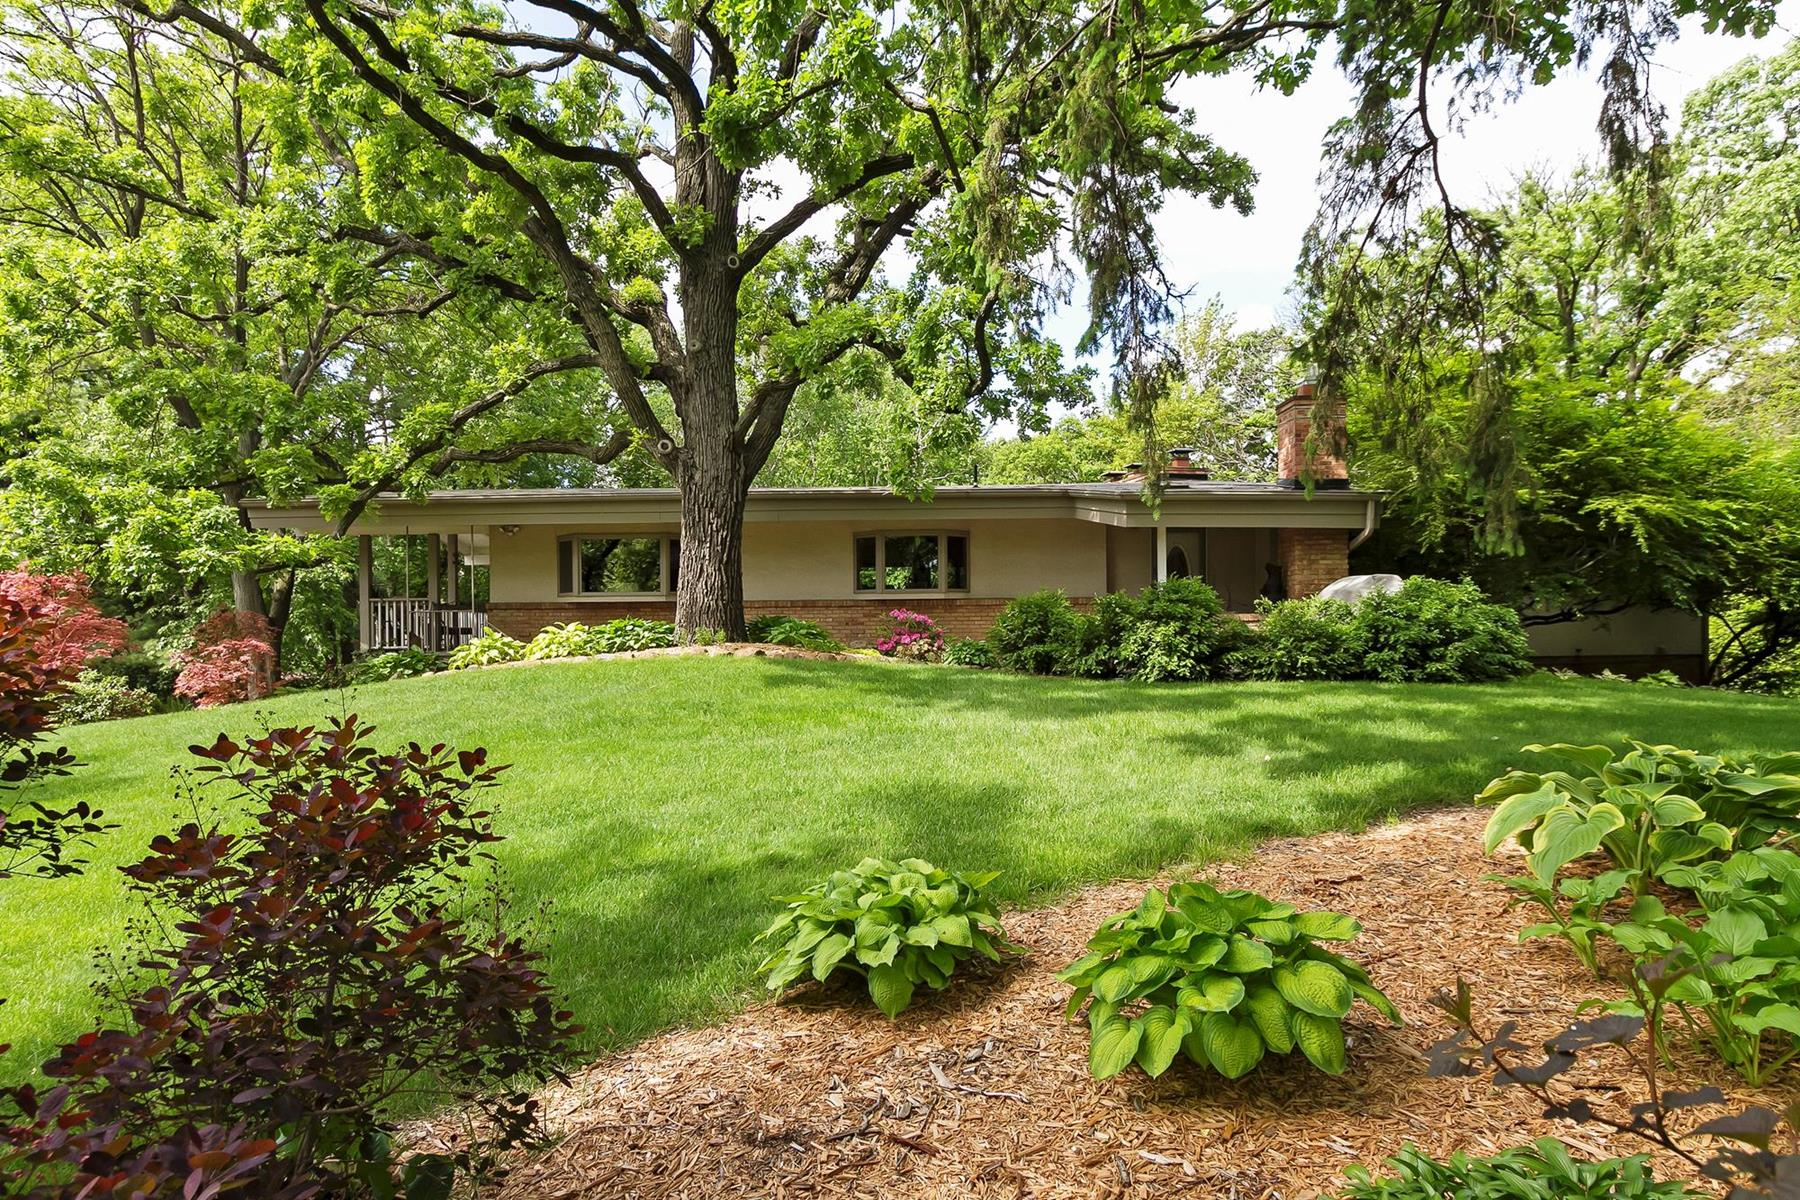 Single Family Homes for Sale at 7070 Willow Creek Road Eden Prairie, Minnesota 55344 United States